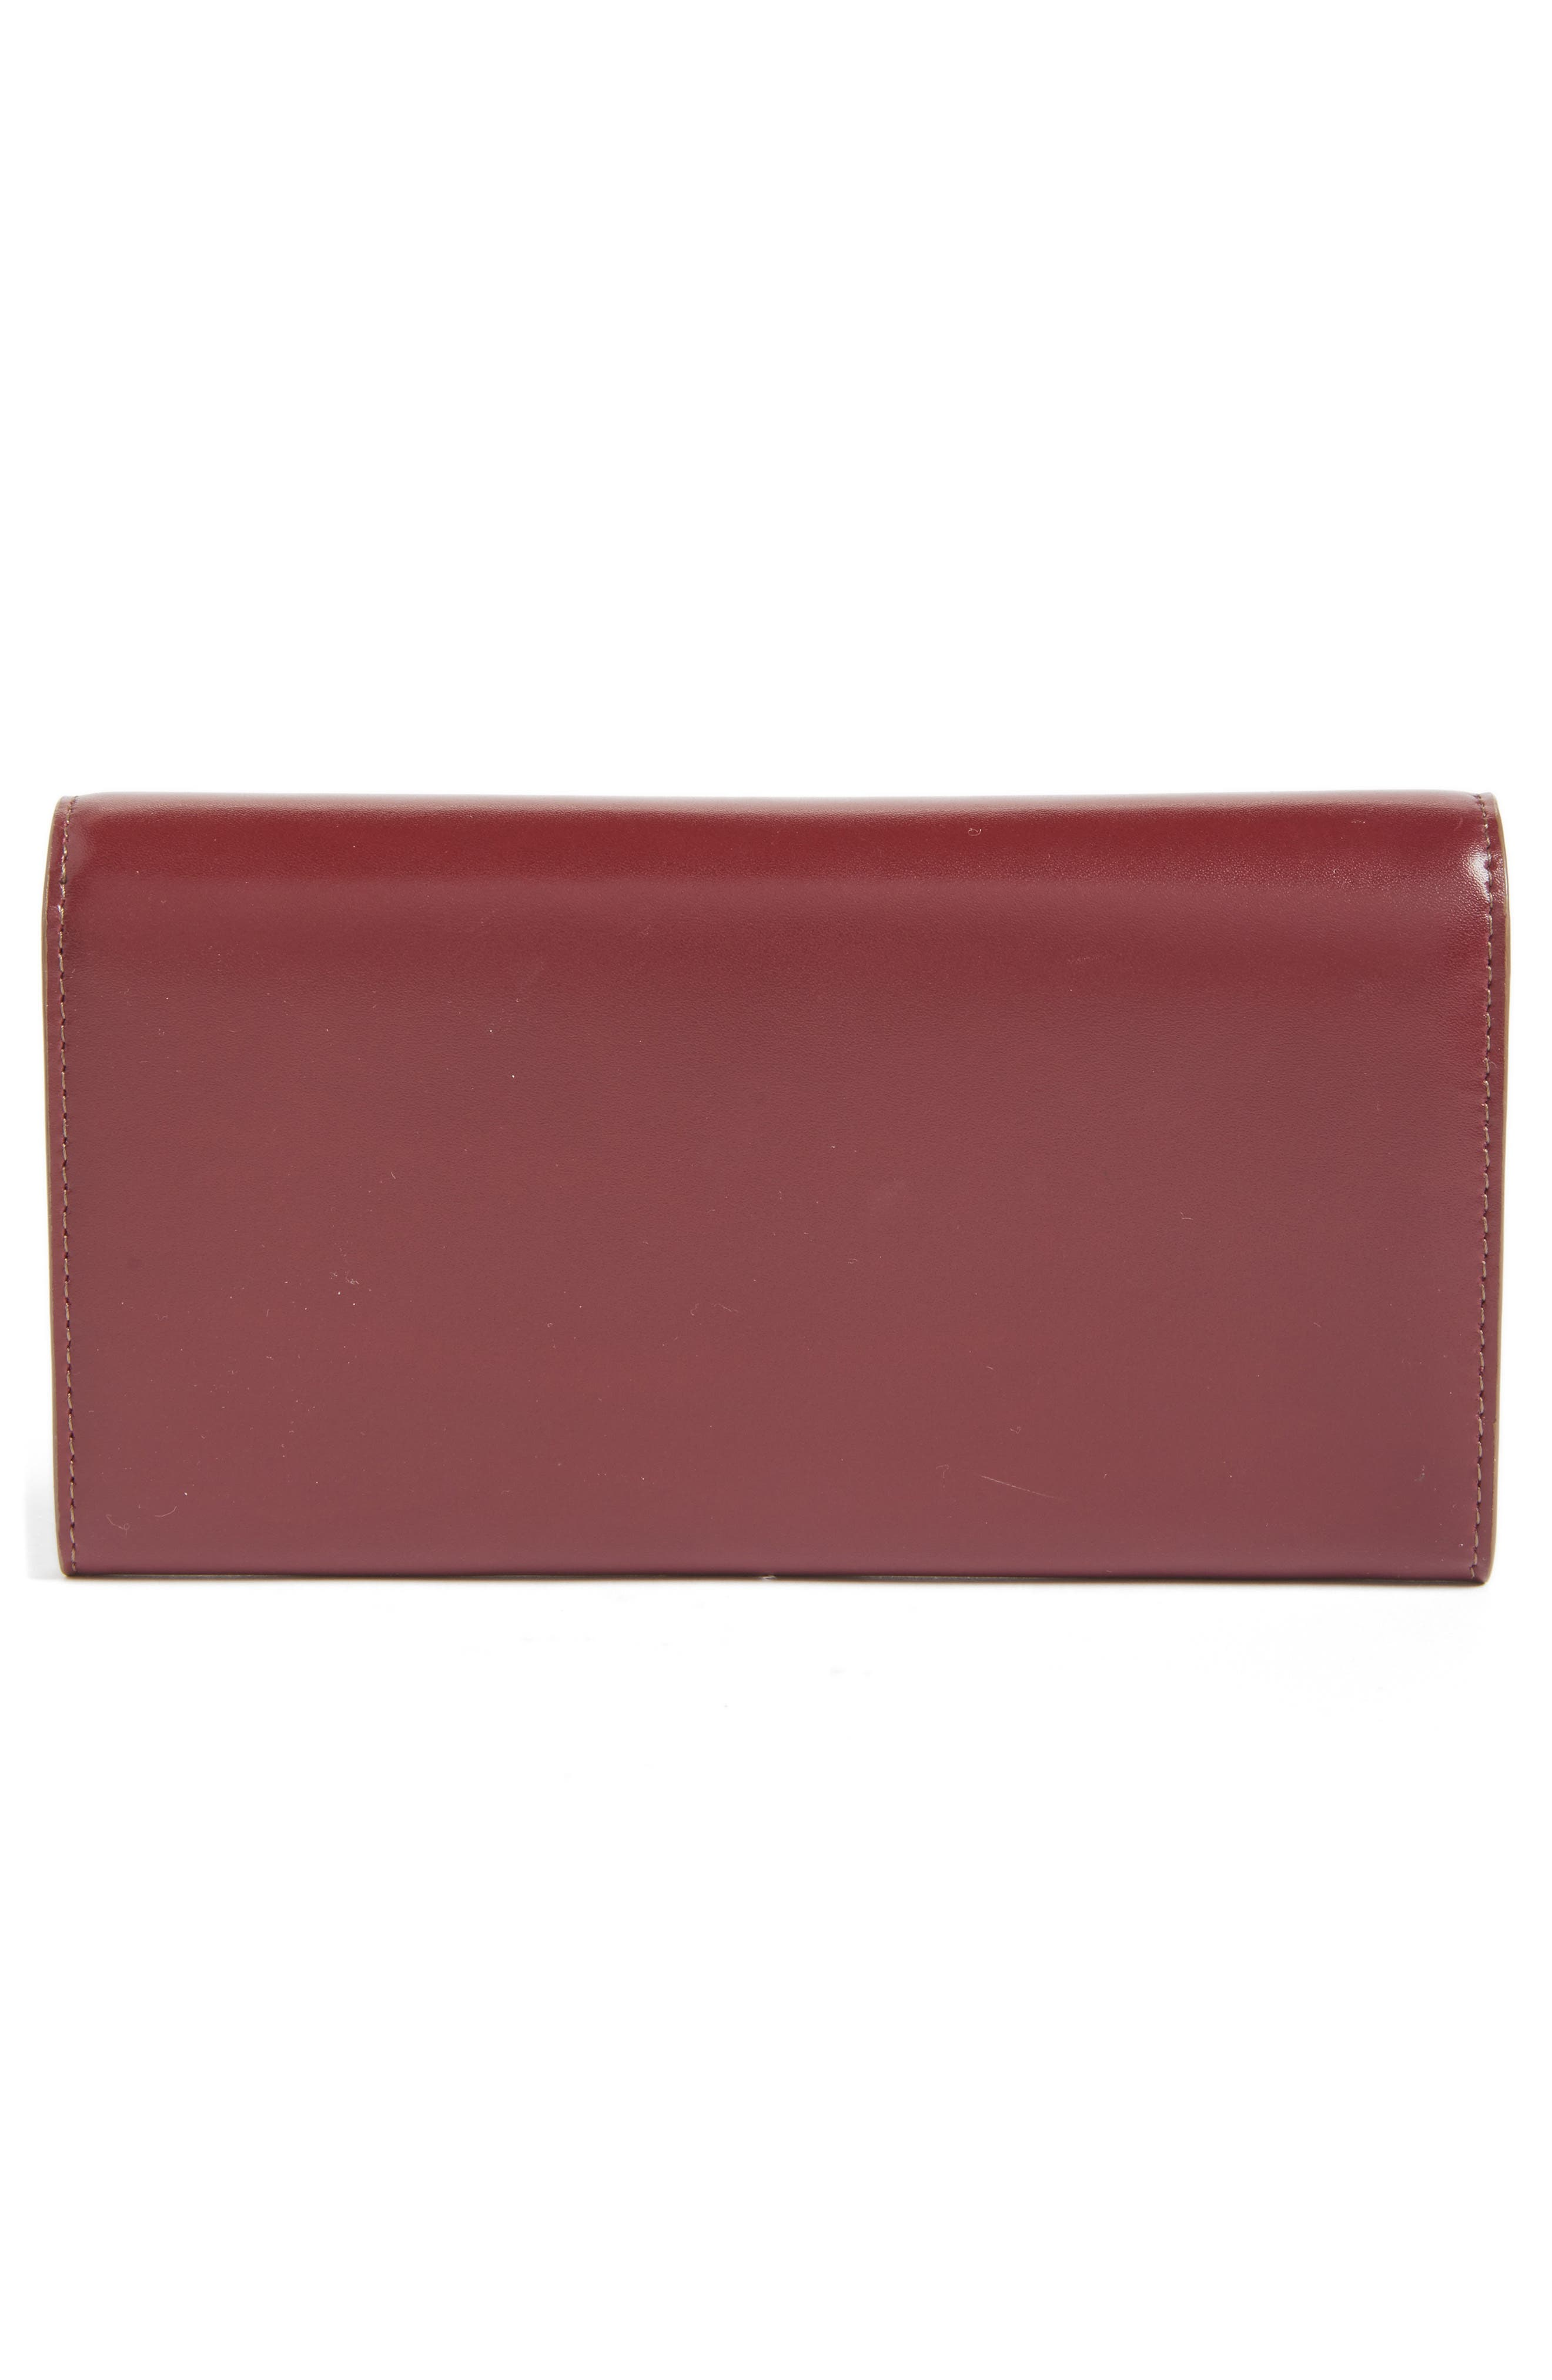 Alternate Image 4  - Lodis Audrey - Cami RFID Leather Clutch Wallet